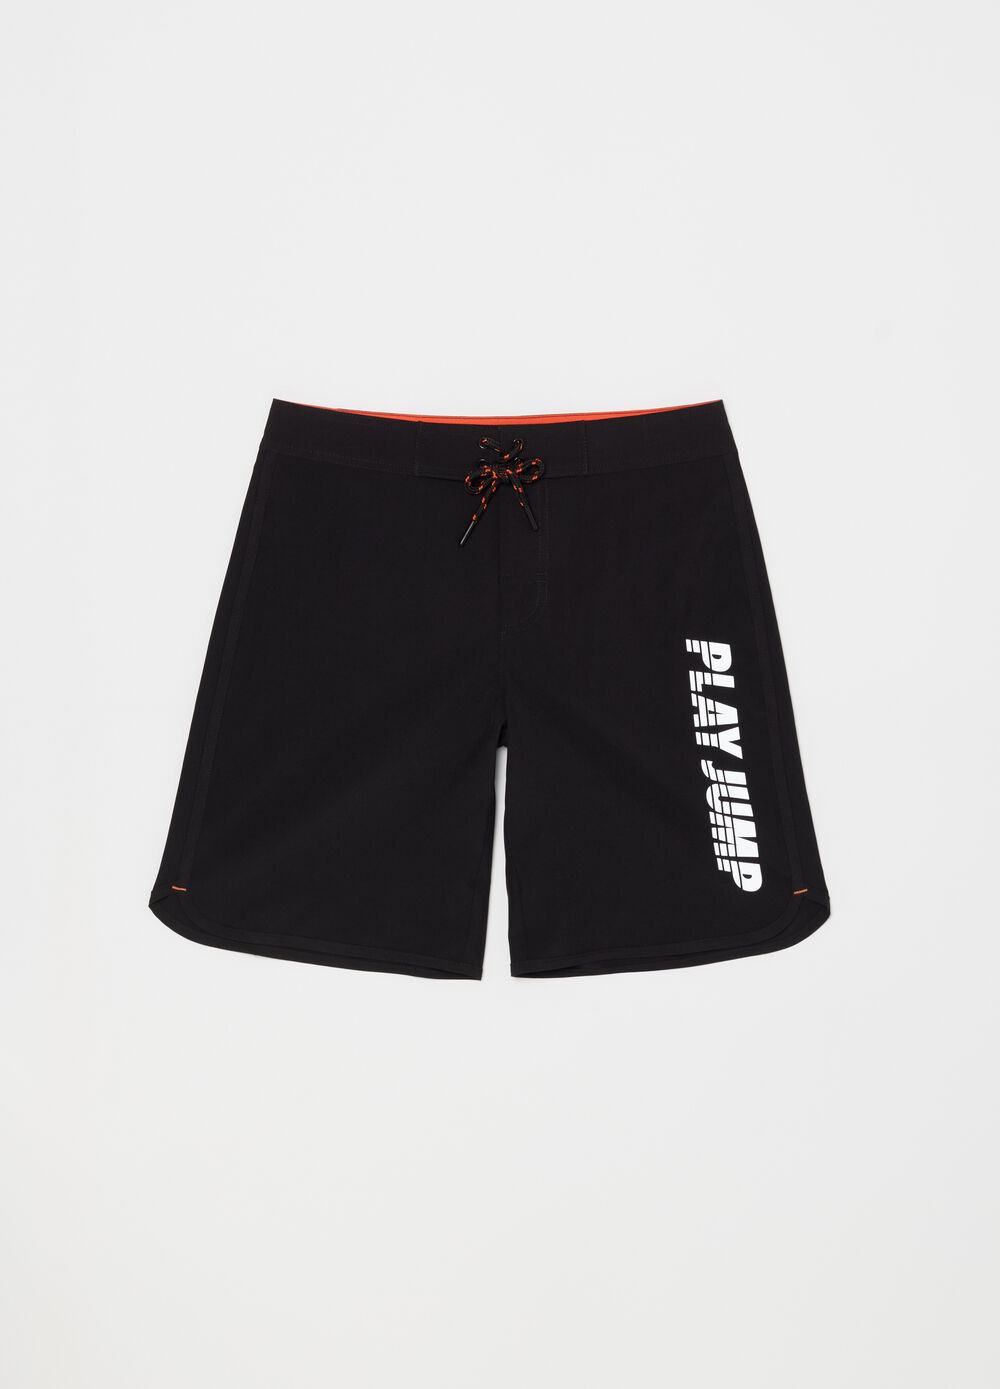 Swim boxer shorts with pocket, print and drawstring